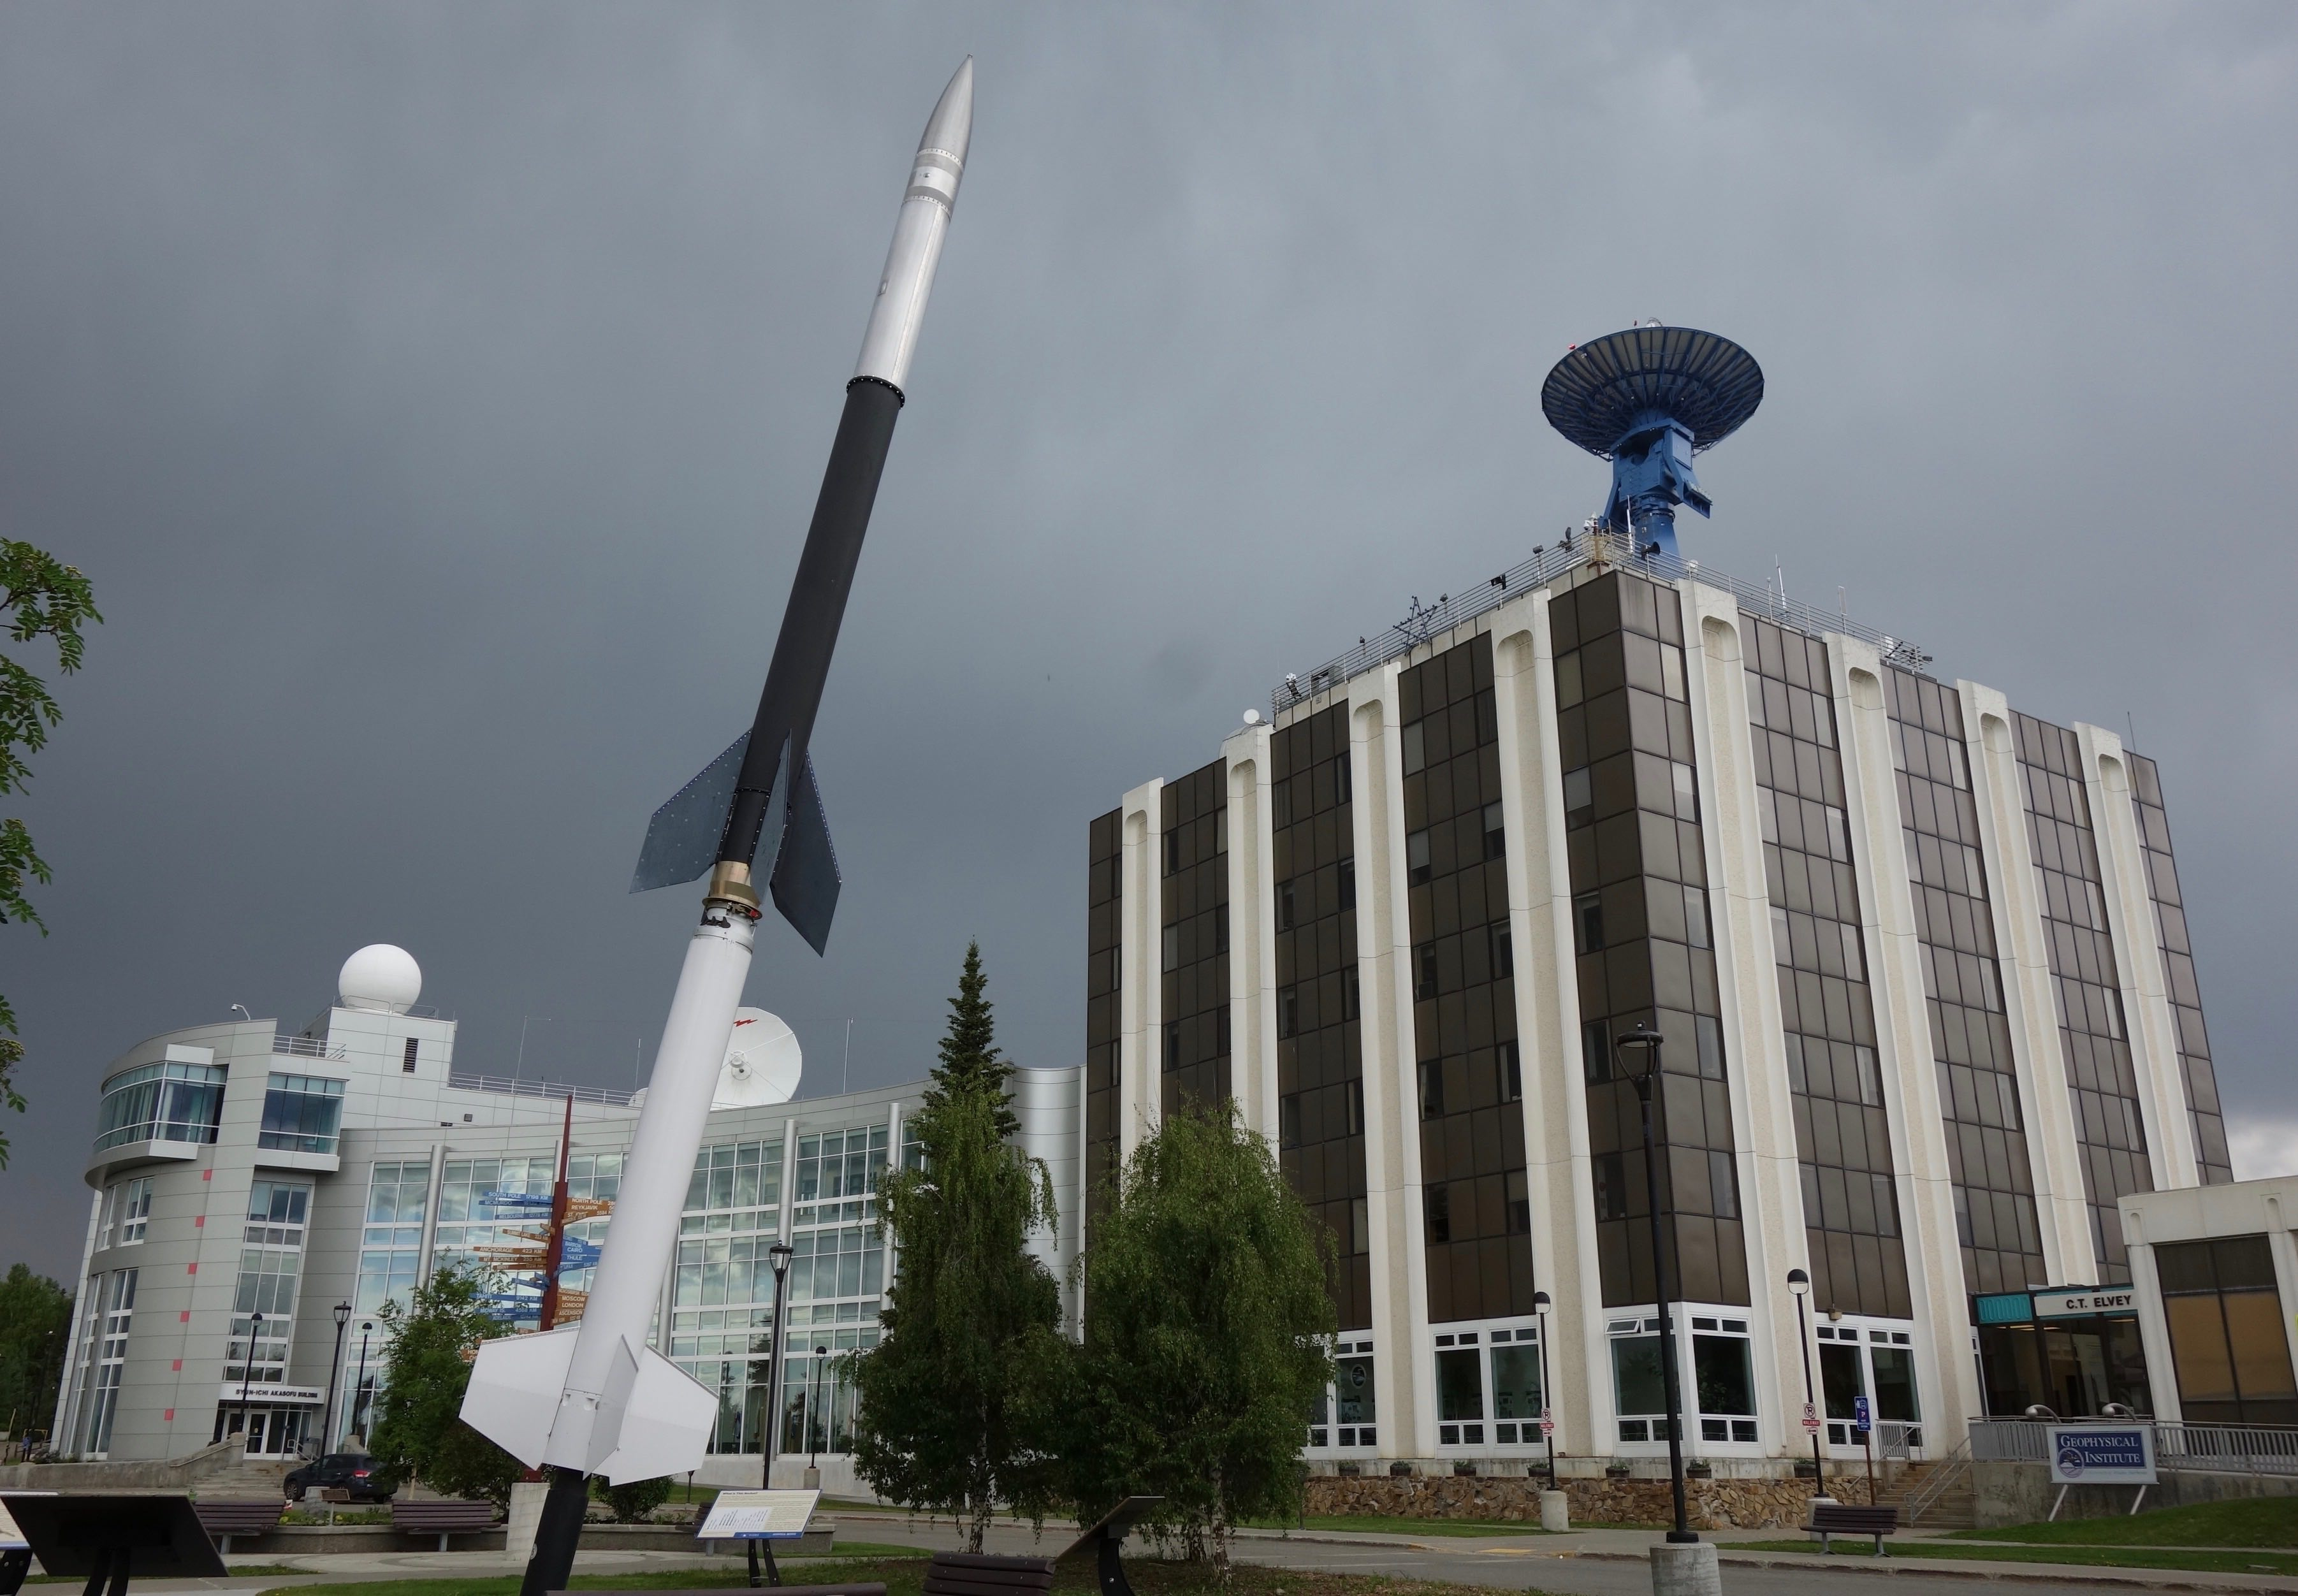 A rocket shell sits on a lawn in front of a building with a large satellite dish antenna on its roof.